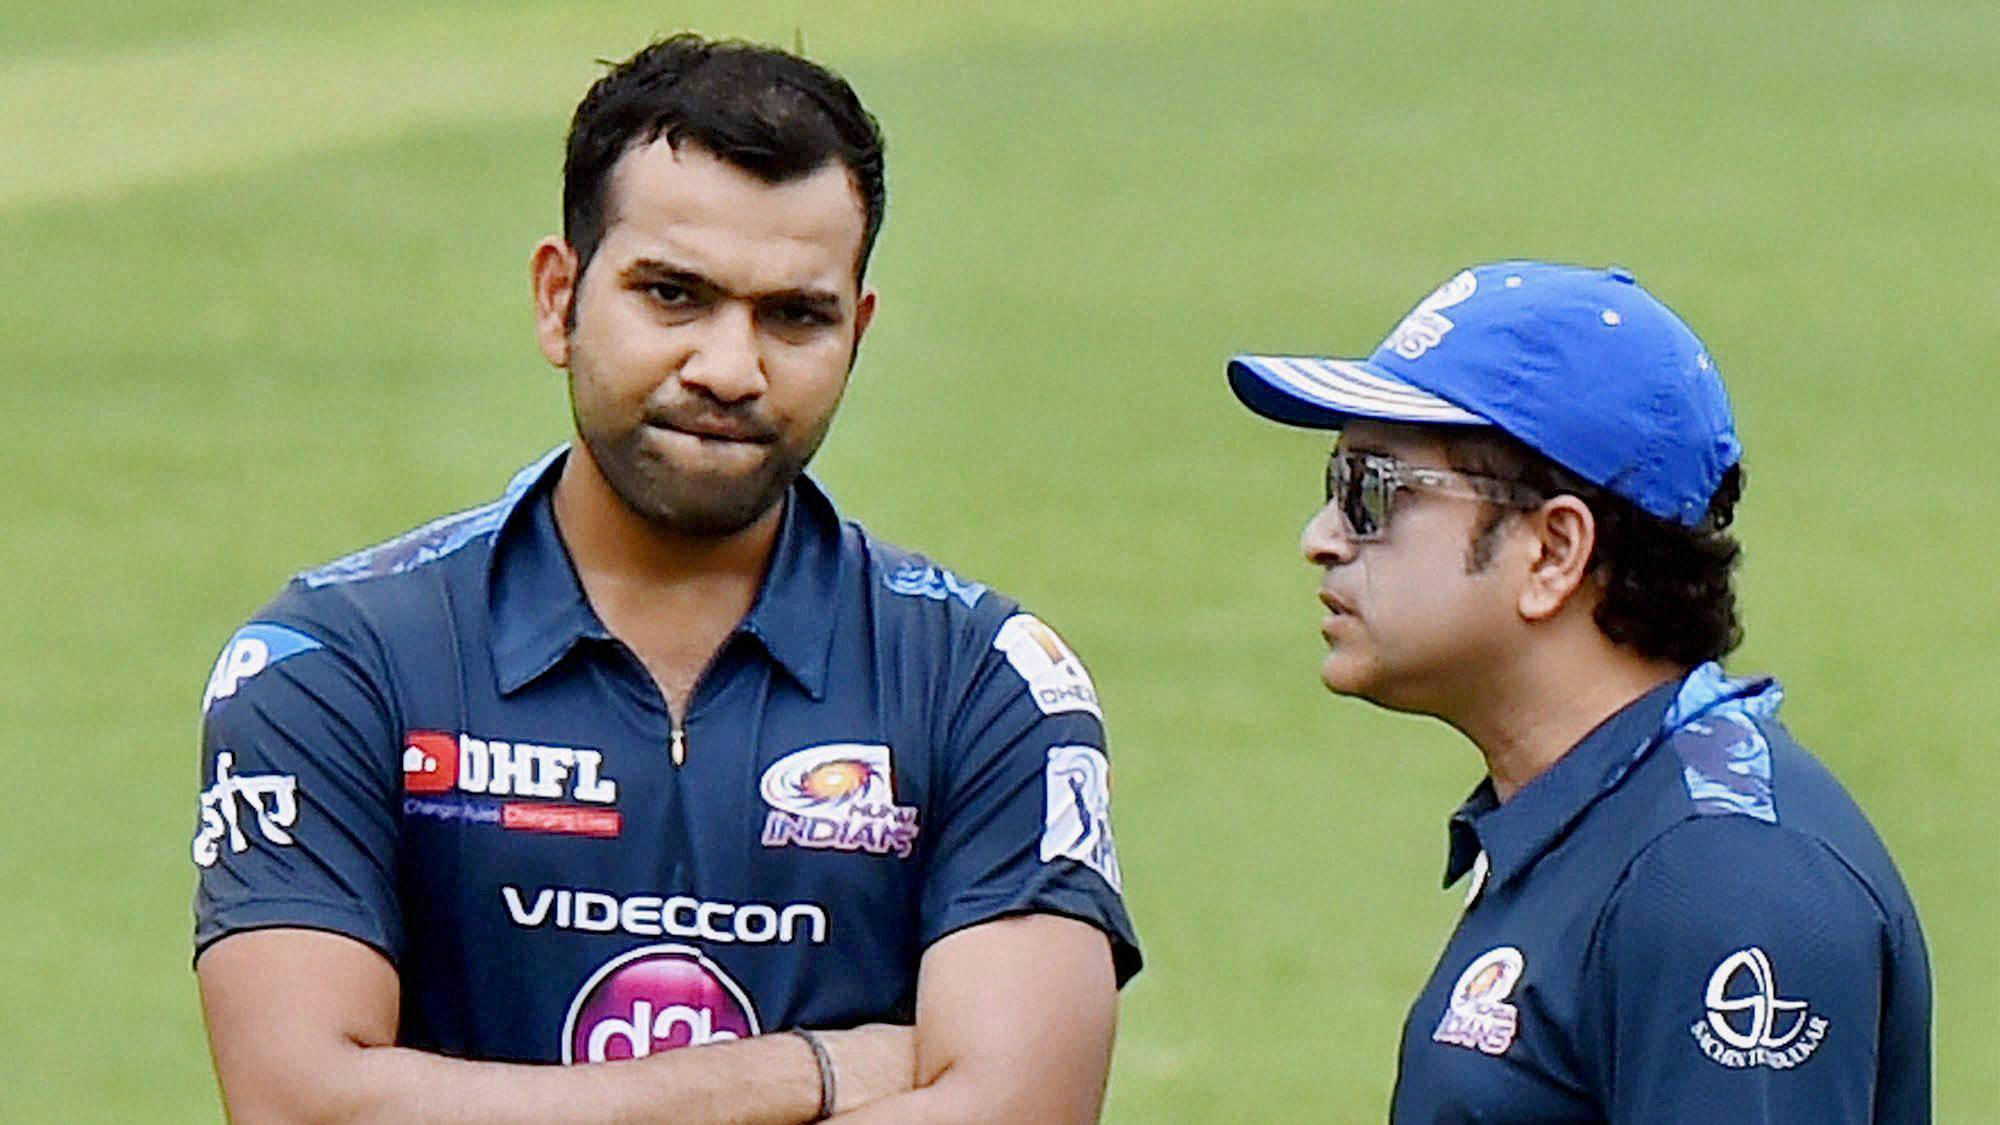 Sachin Has the Perfect Reply to ICC's Post Comparing Him & Rohit